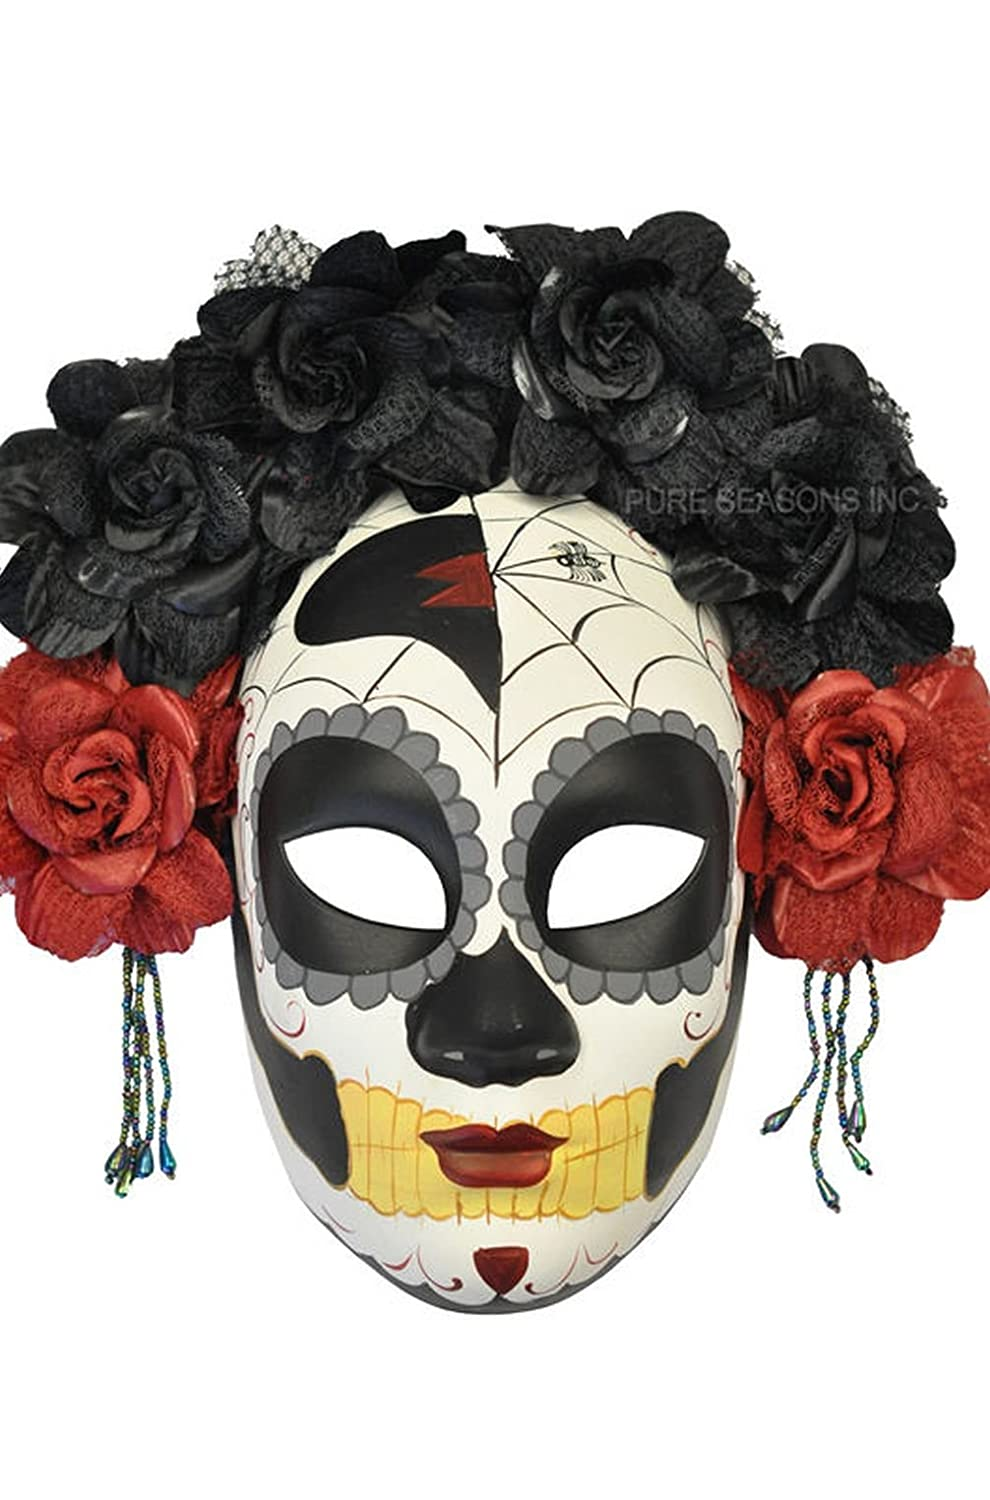 Mememall Fashion La Calavera Catrina Skeleton Skull Masquerade Mask (Black/Red)